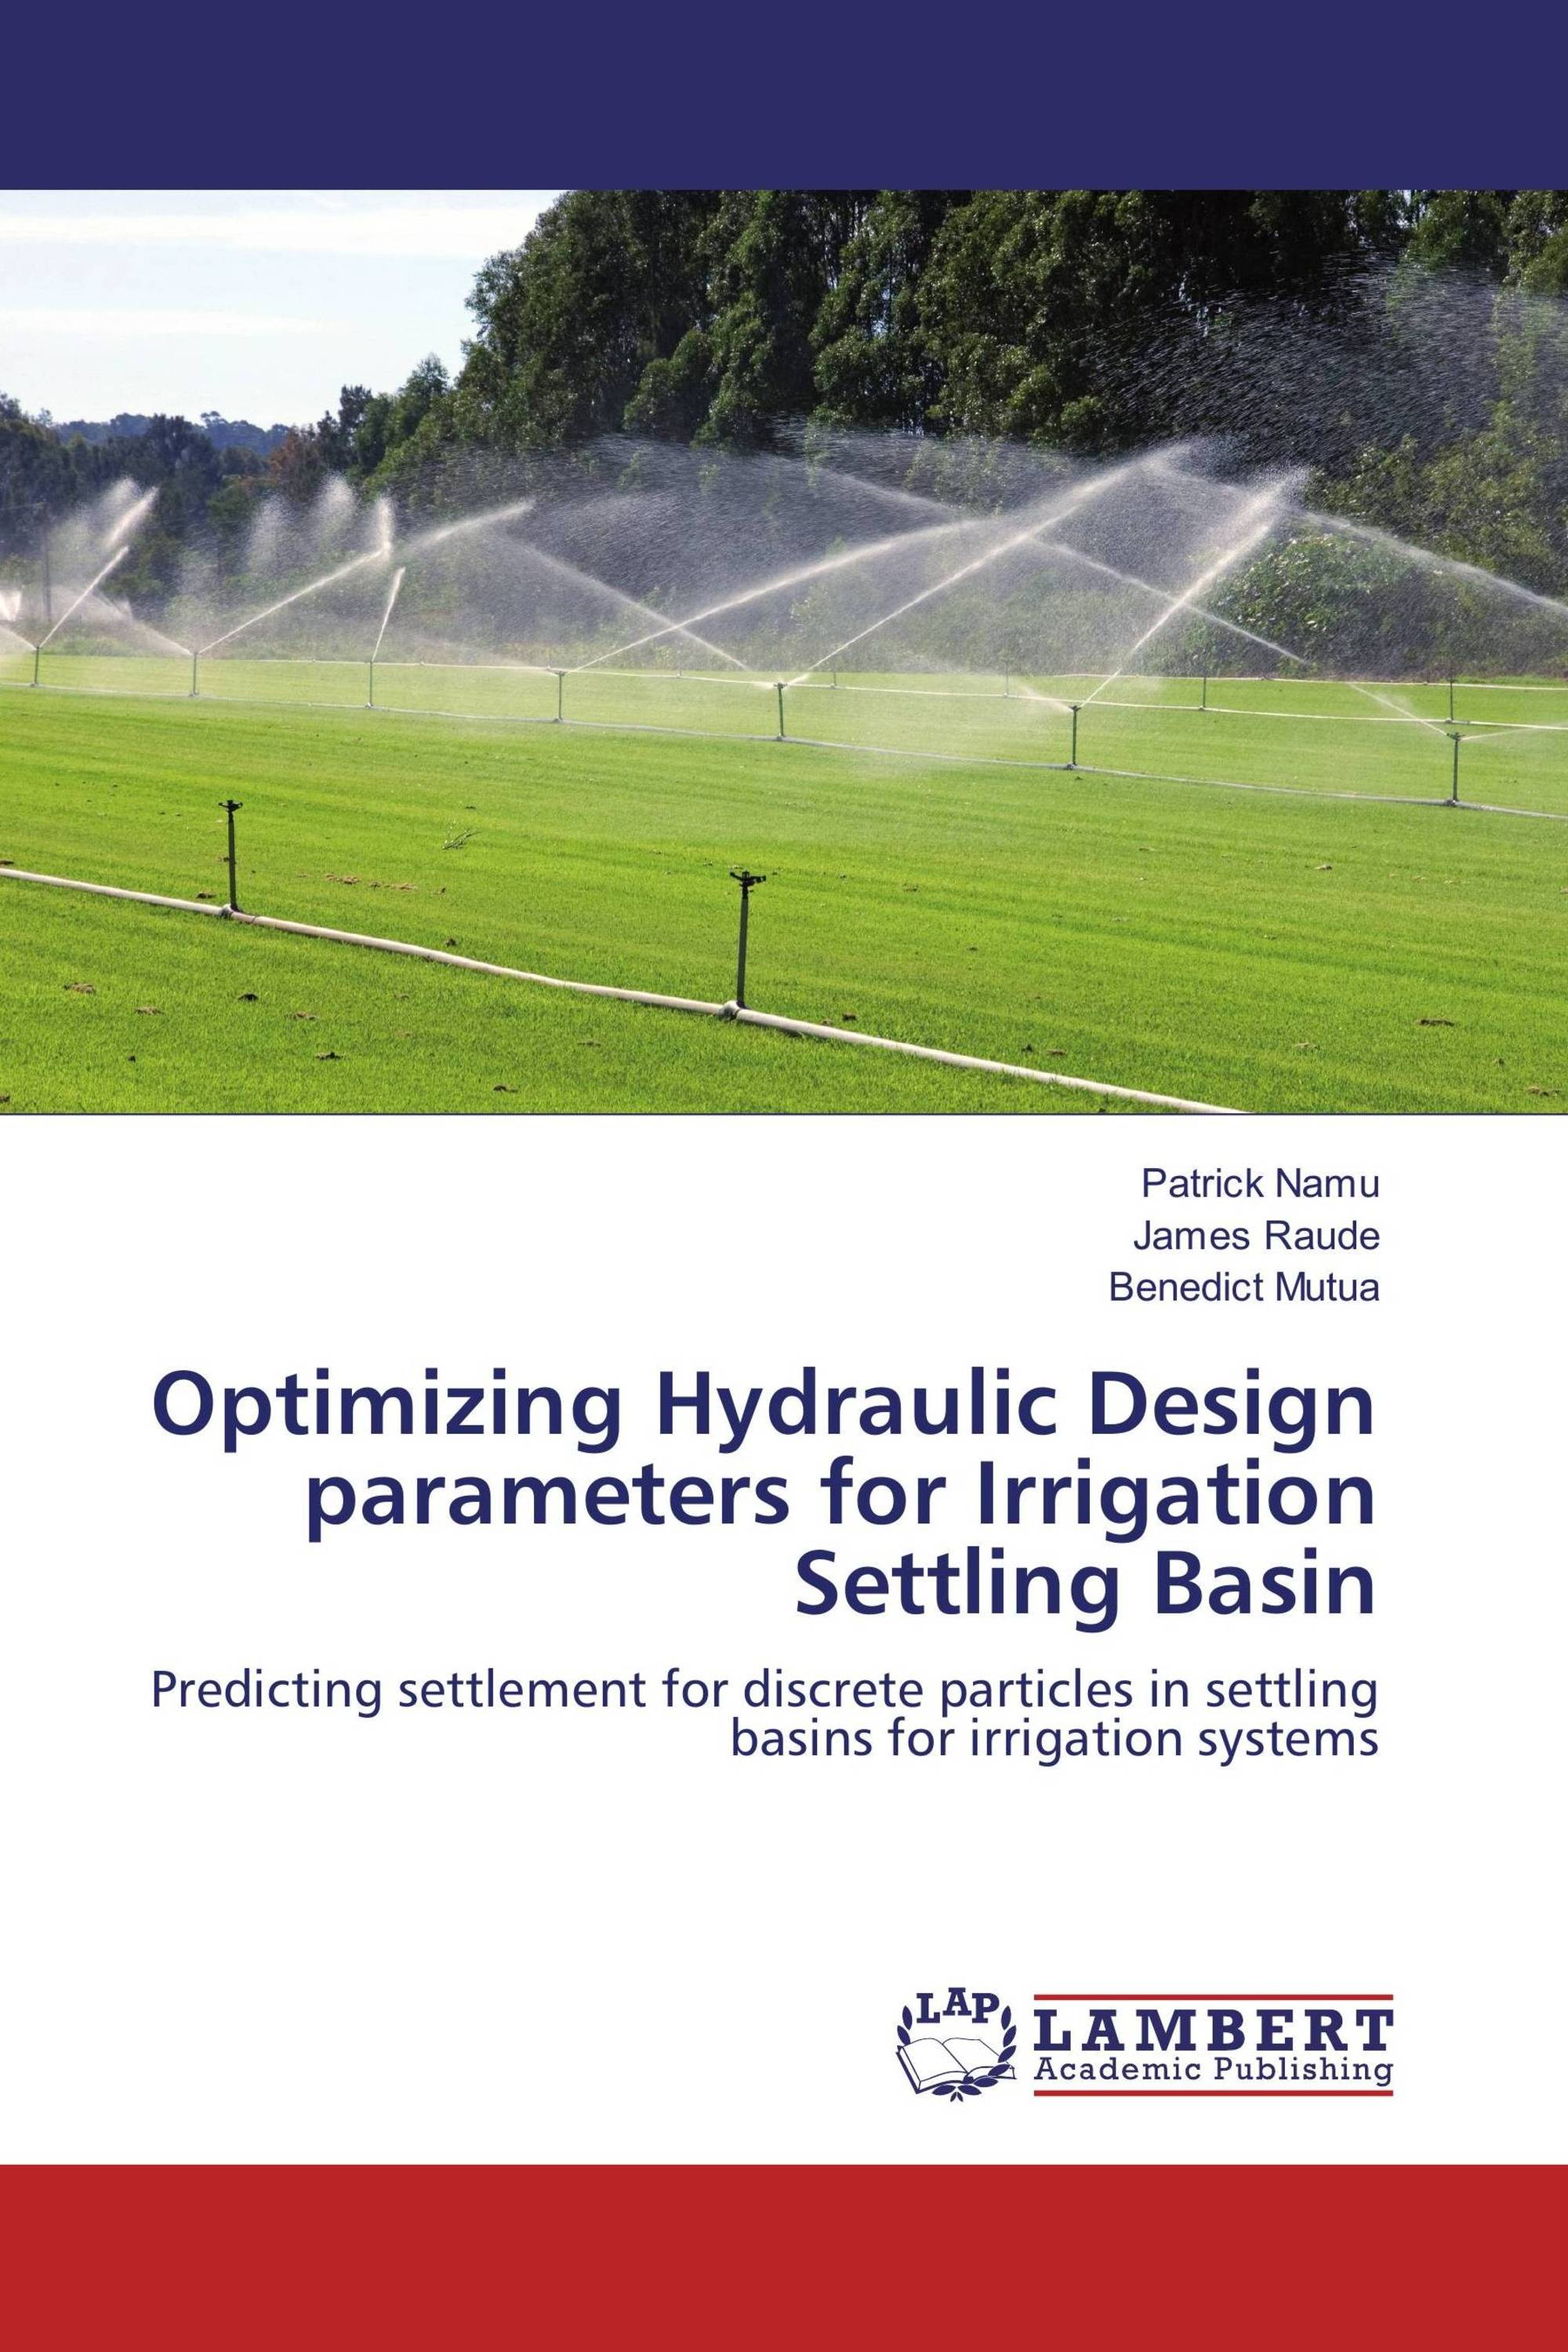 Optimizing Hydraulic Design parameters for Irrigation Settling Basin